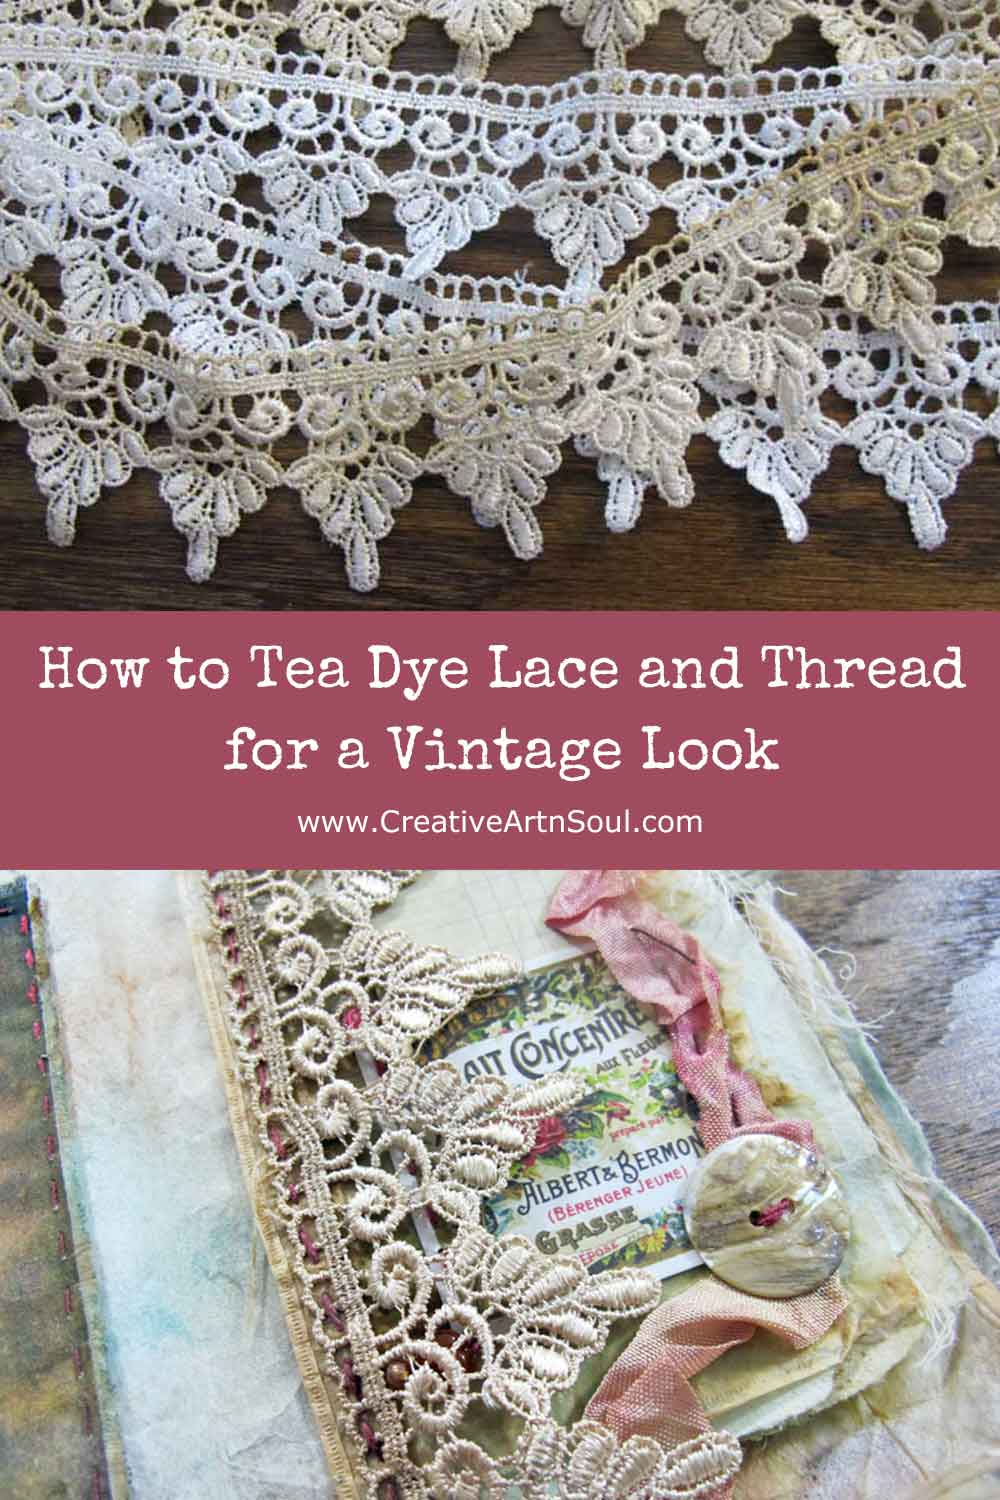 How to Tea Dye Fabric, Lace and Thread for a Vintage Look